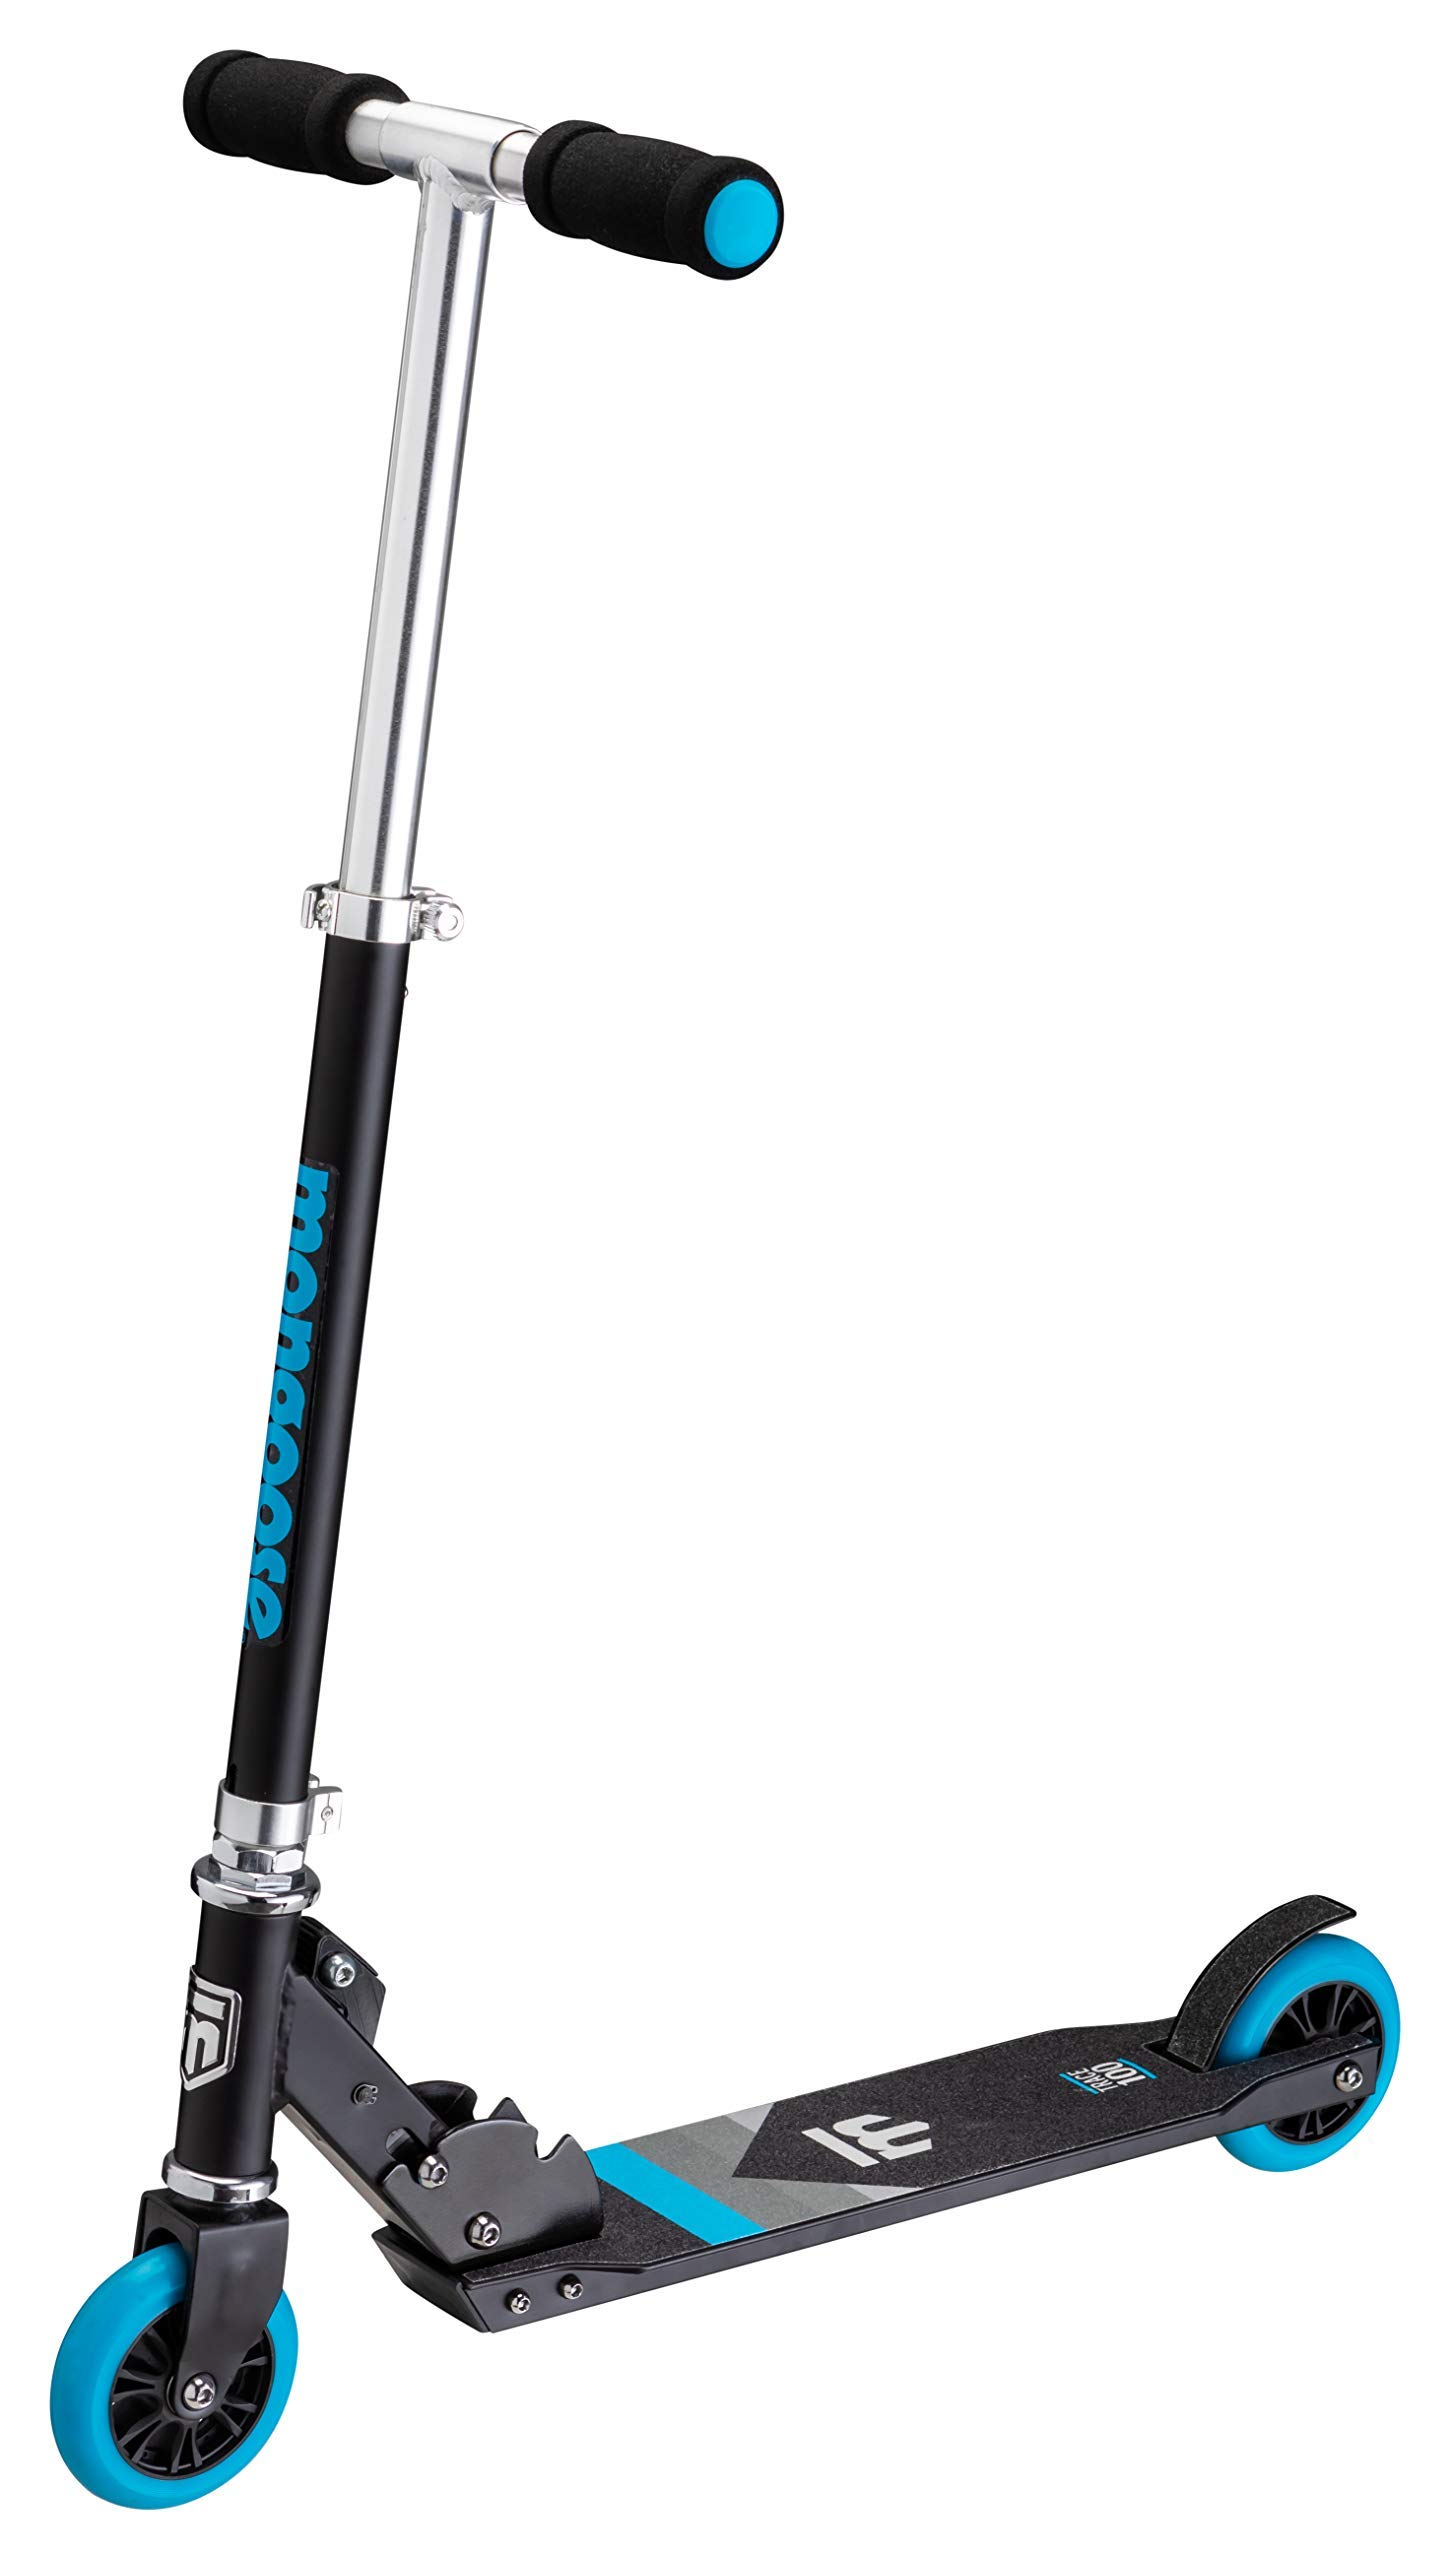 Mongoose Trace 100 Foldable Kick Scooter, Featuring Quick-Release Adjustable Height Handlebars with 100mm Wheels, Black/Blue (Renewed) by Mongoose